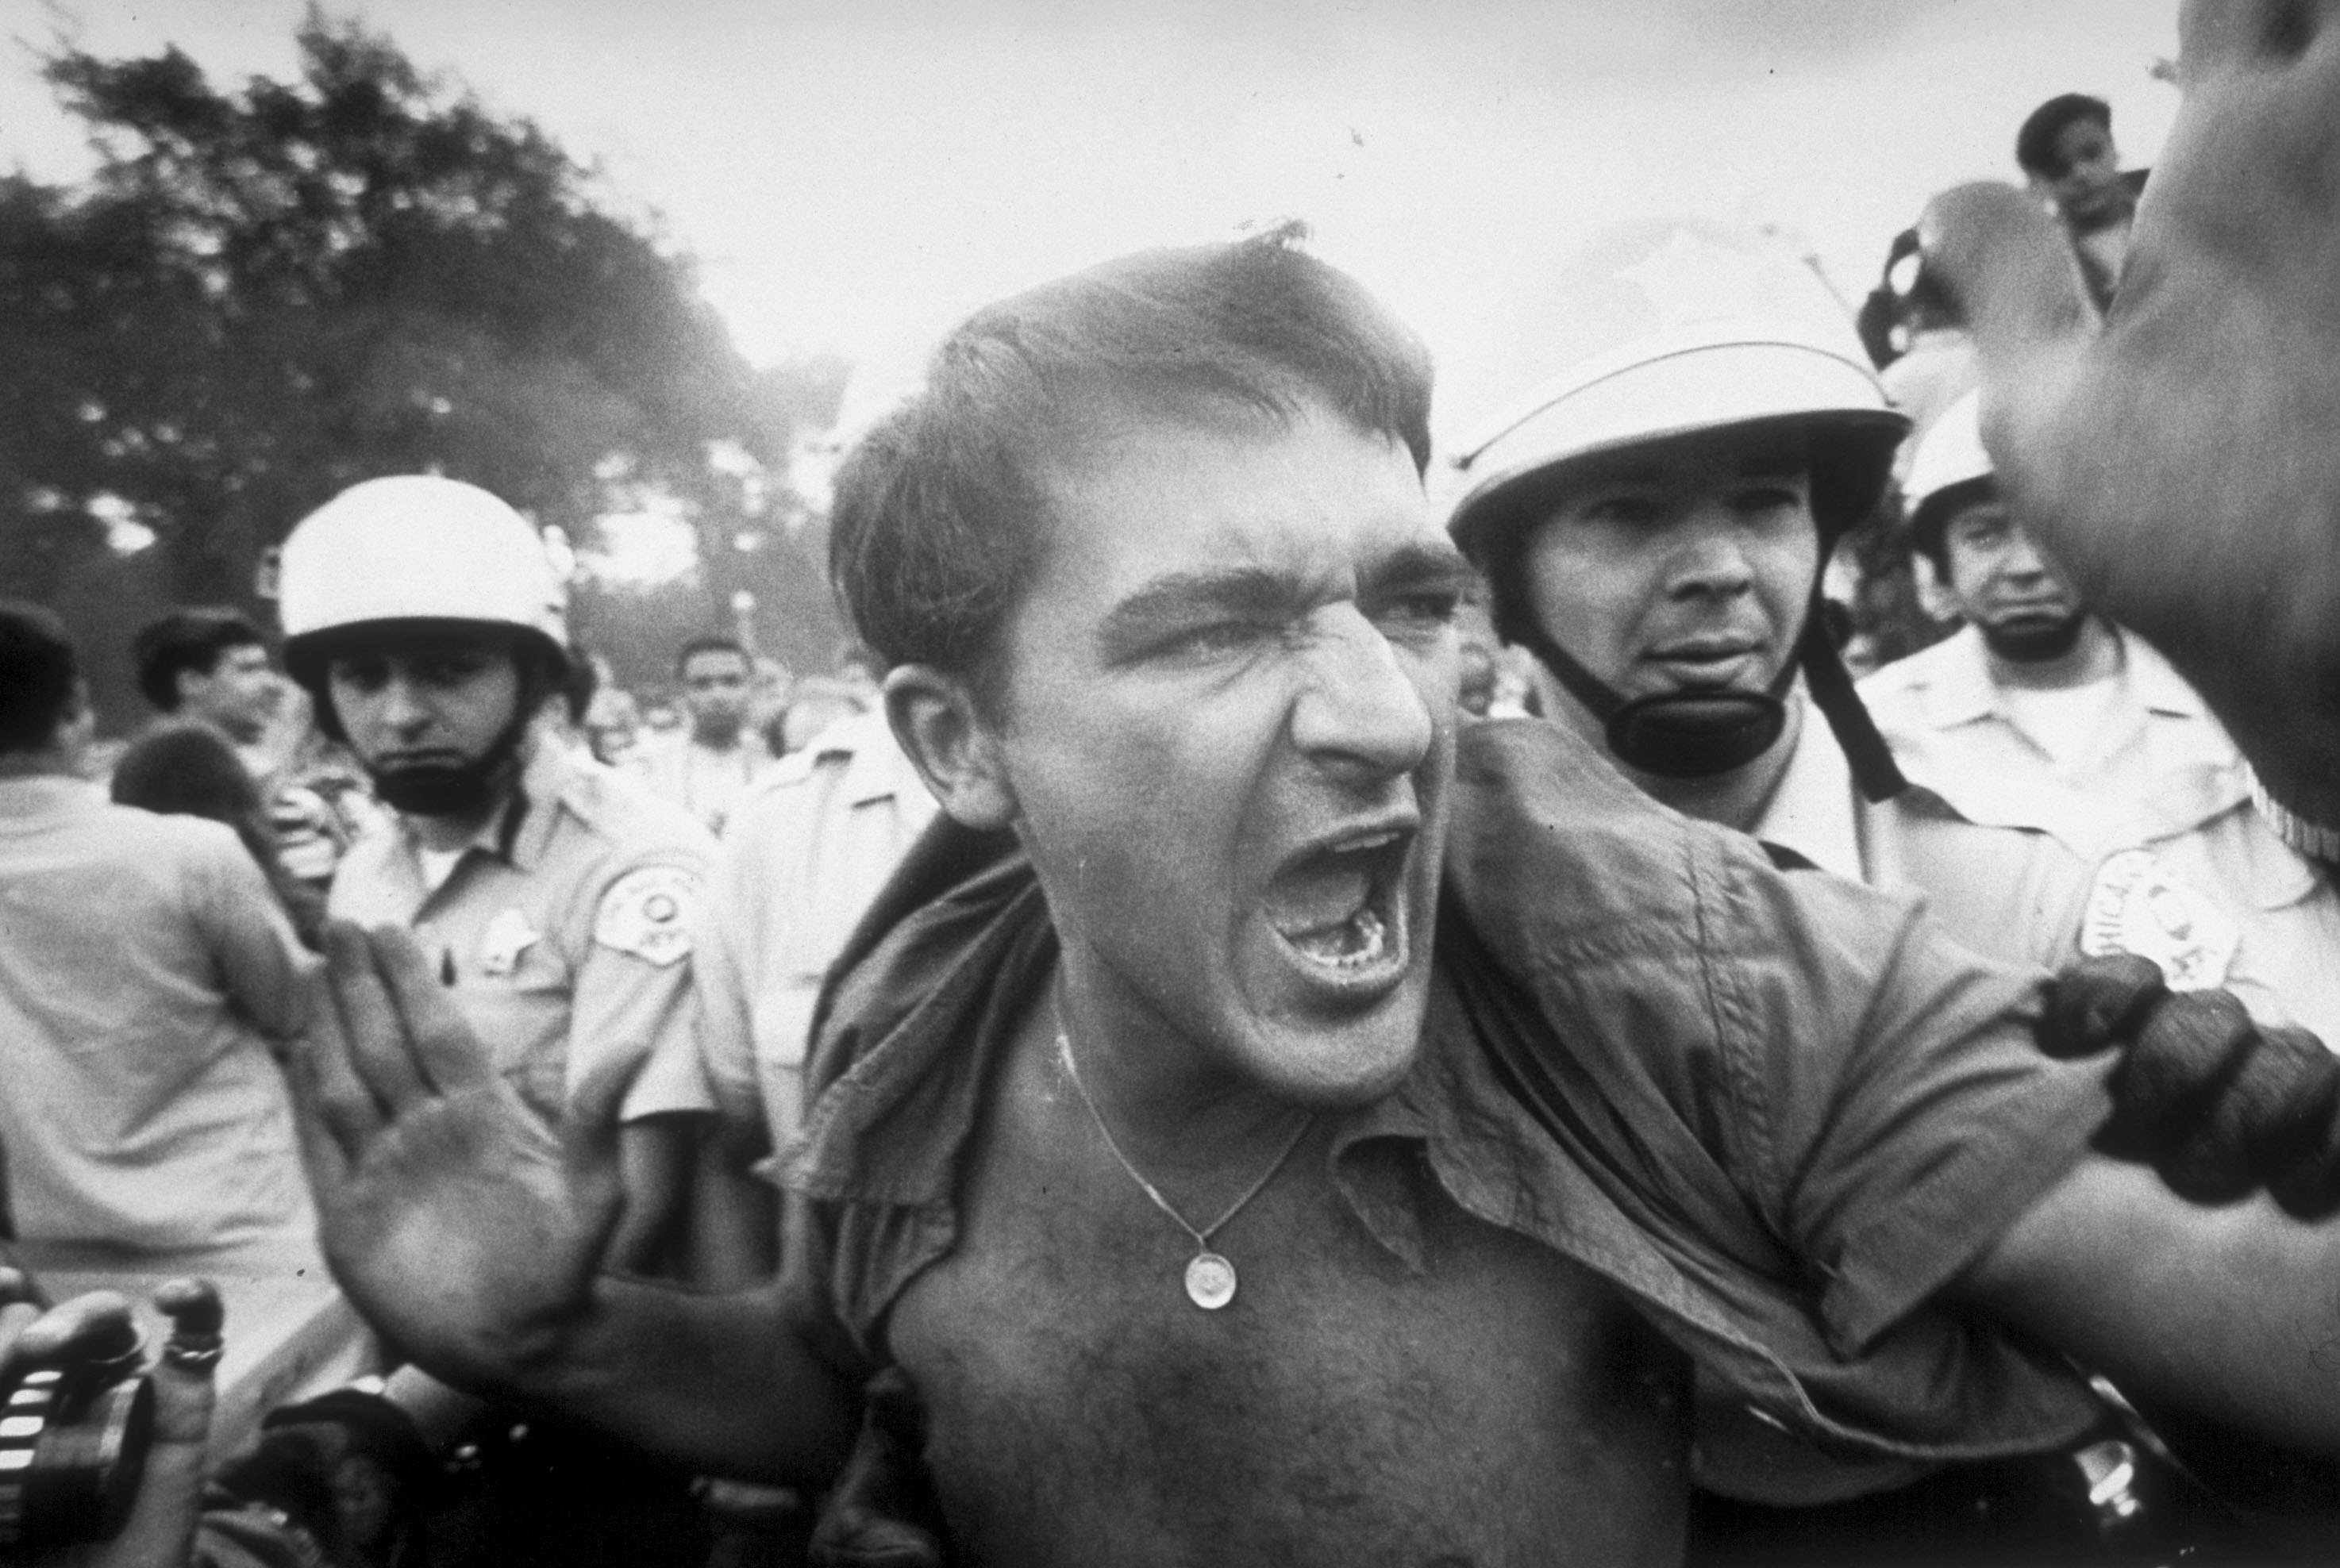 An unidentified protester being led away by police from the demonstration outside the 1968 Democratic National Convention. (Credit: Lee Balterman/The LIFE Picture Collection/Getty Images)